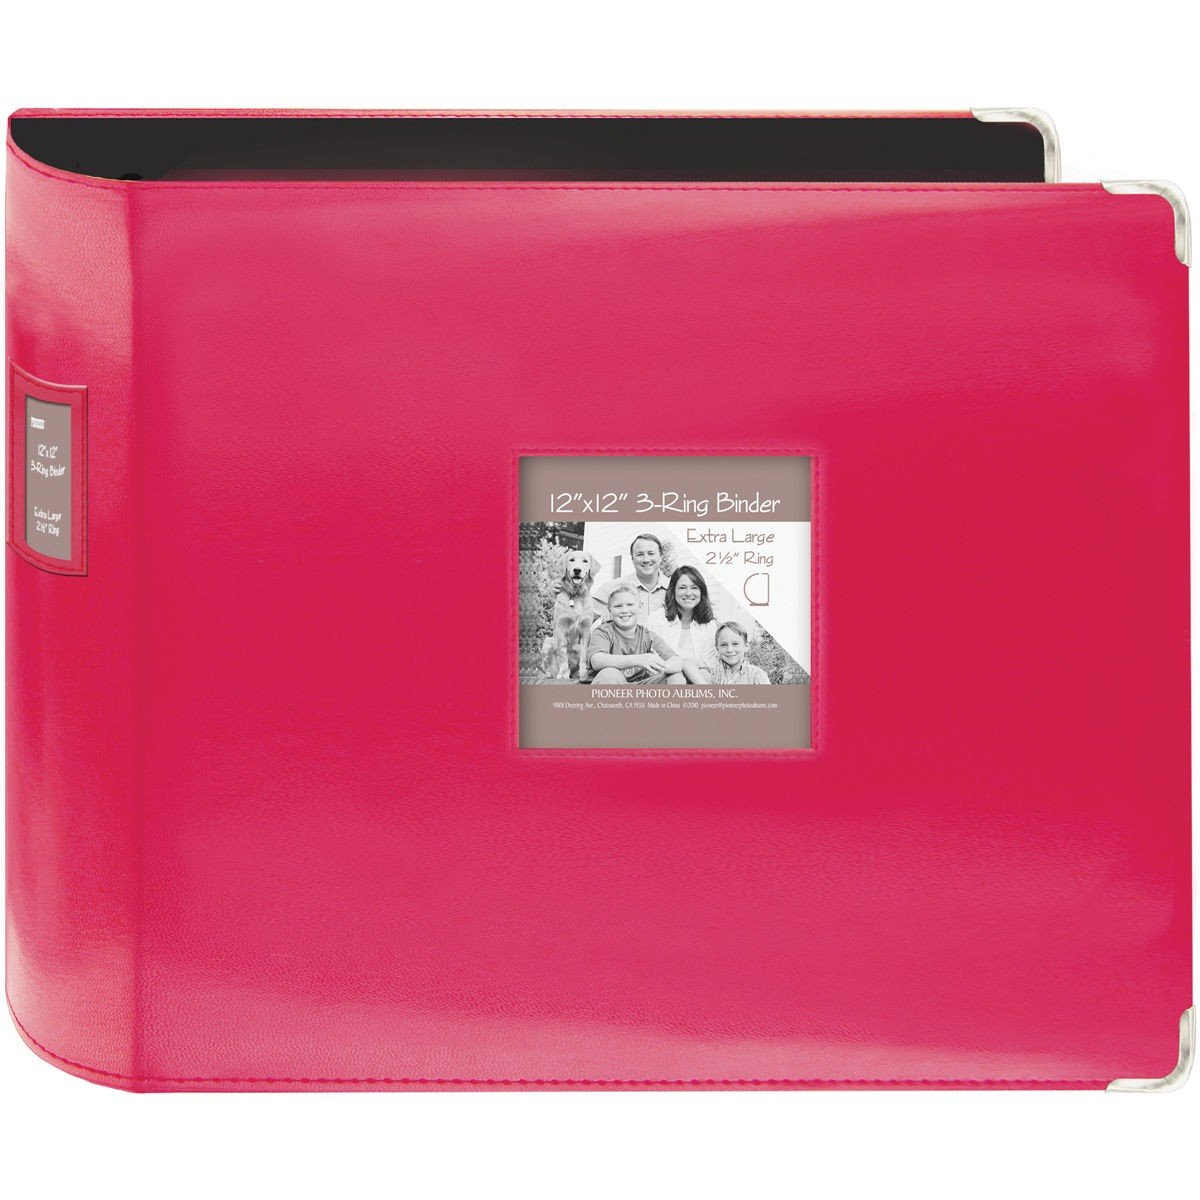 ChatAngle(TM) Sewn Leatherette 3-Ring Binder 12''X12''-Bright Pink by ChatAngle (Image #1)